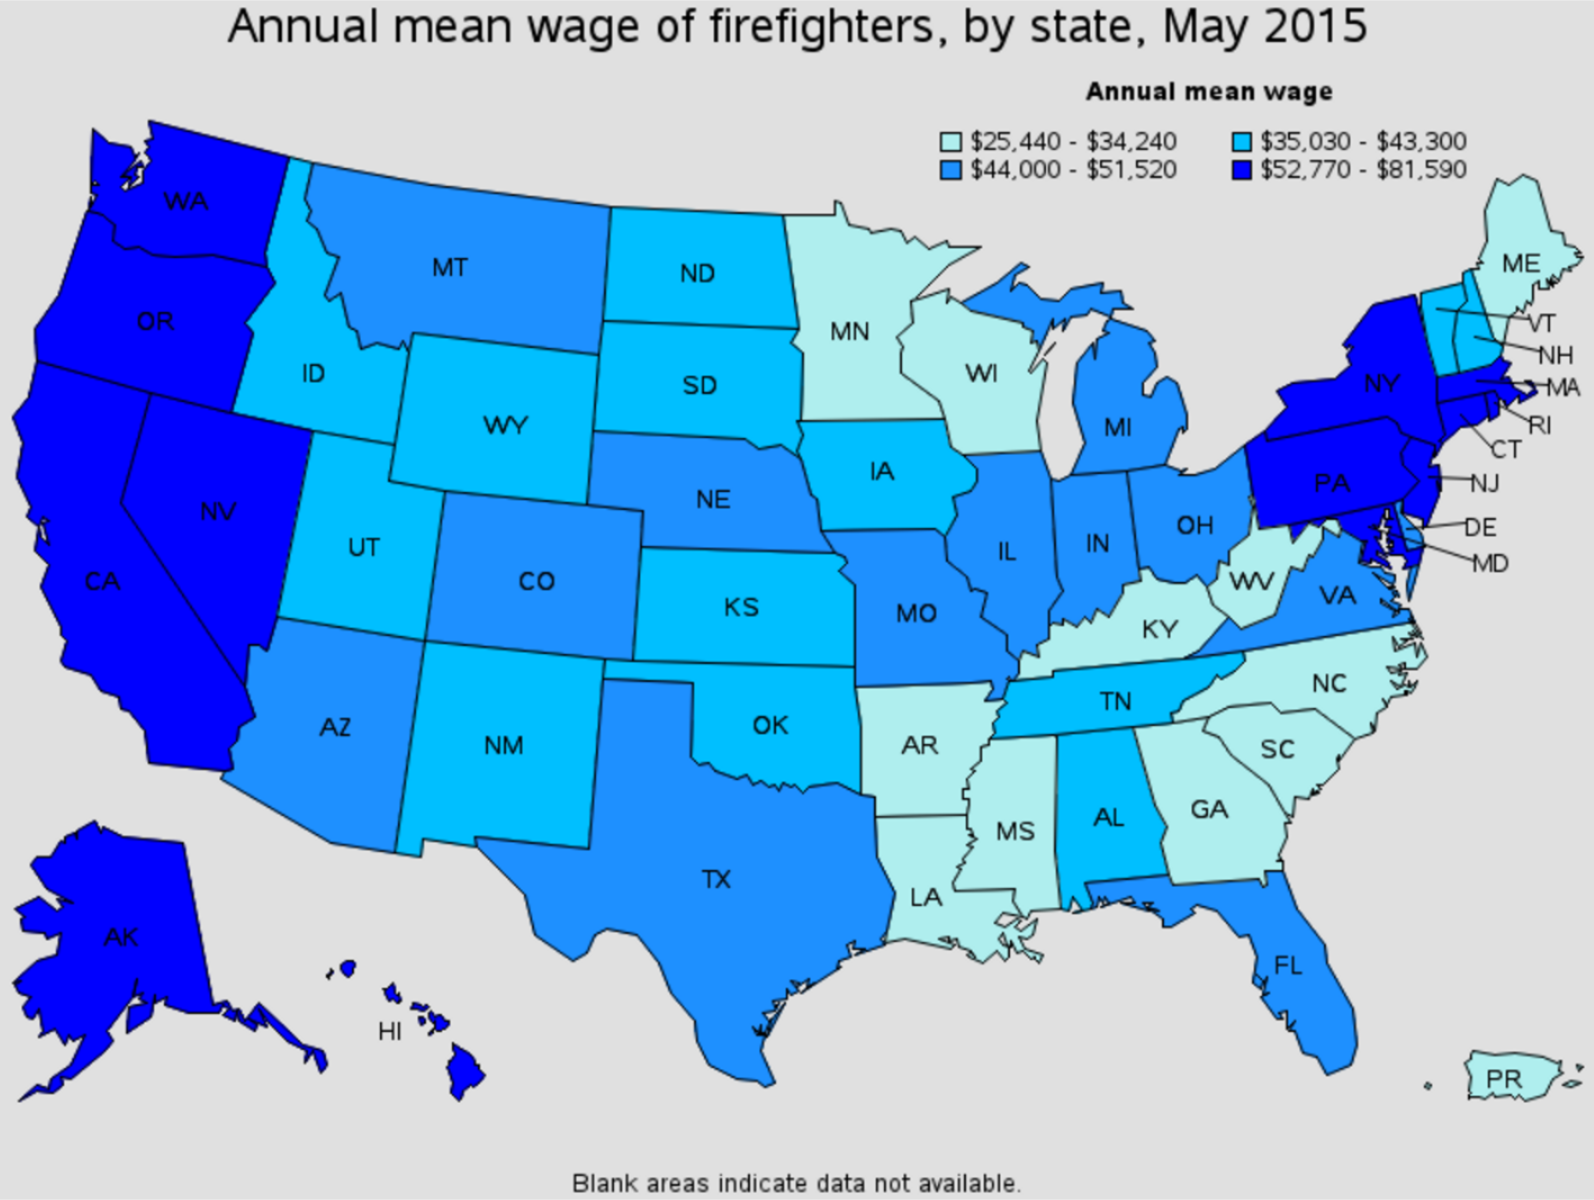 firefighter average salary by state Palo Verde Arizona